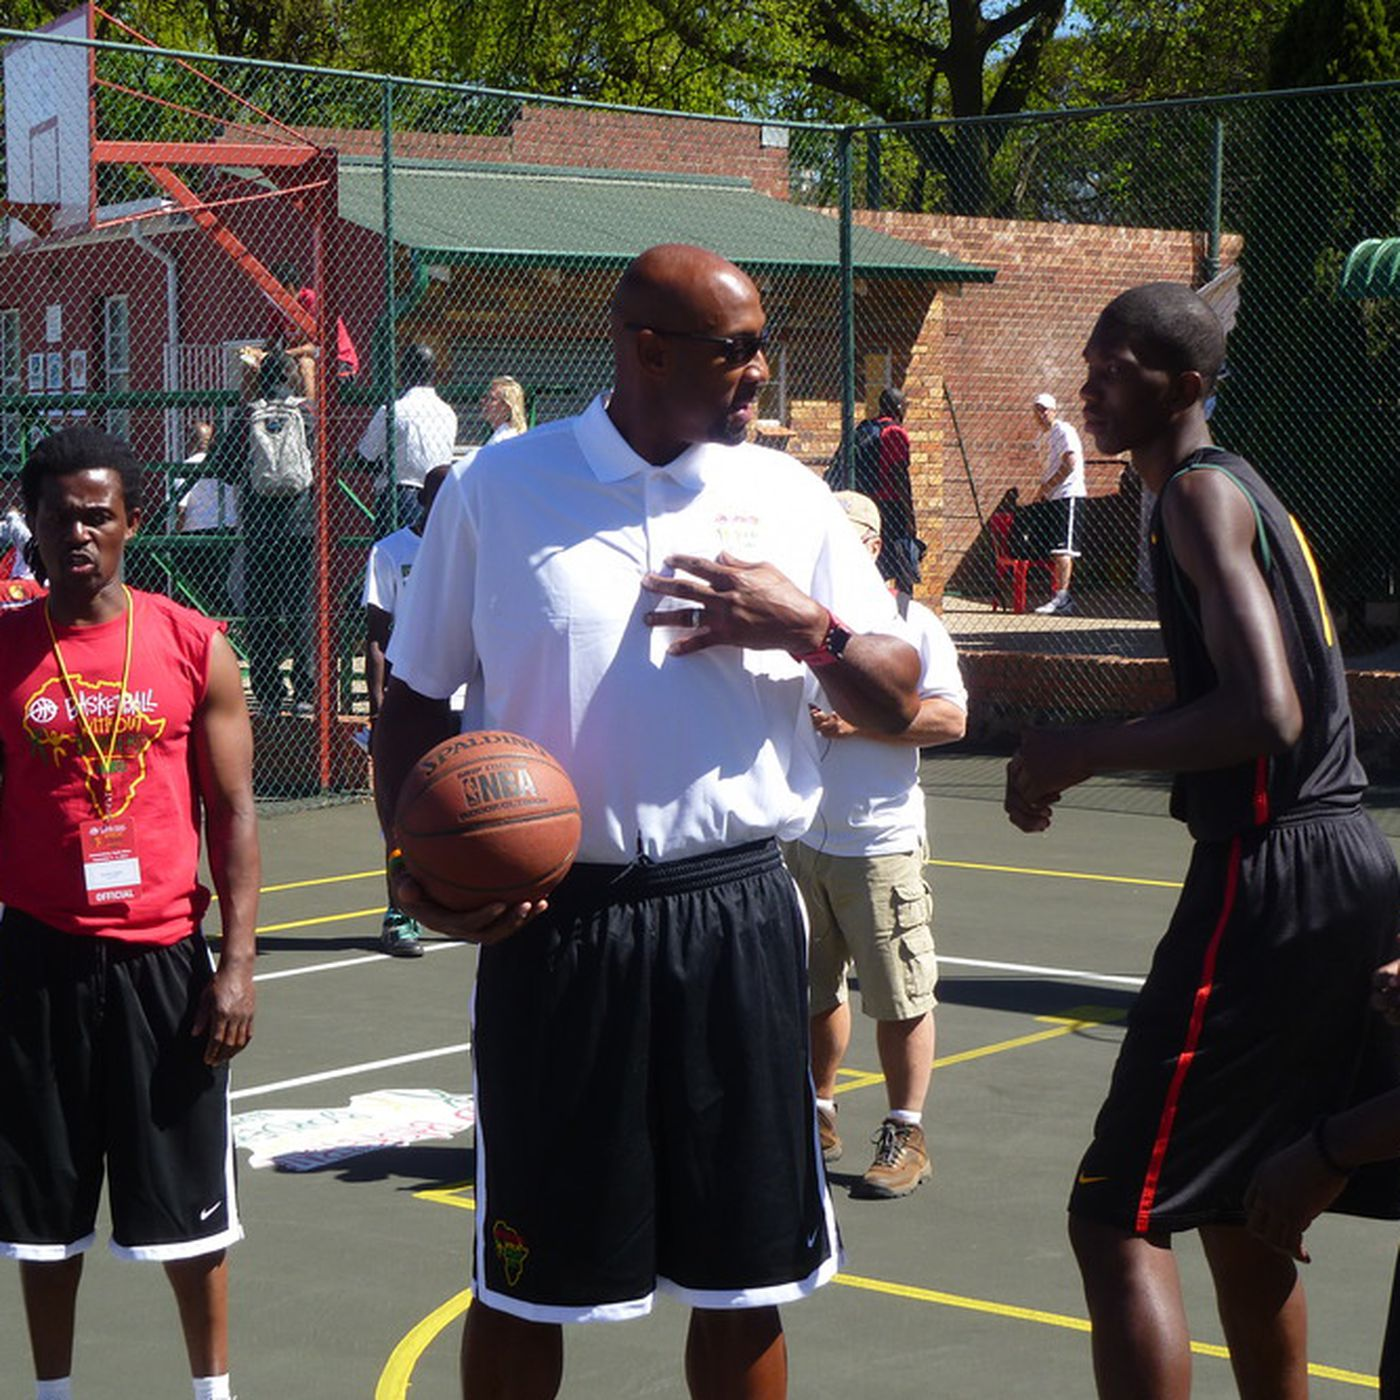 Camaraderie Is Essence Of Nba S Basketball Without Borders In South Africa Sbnation Com